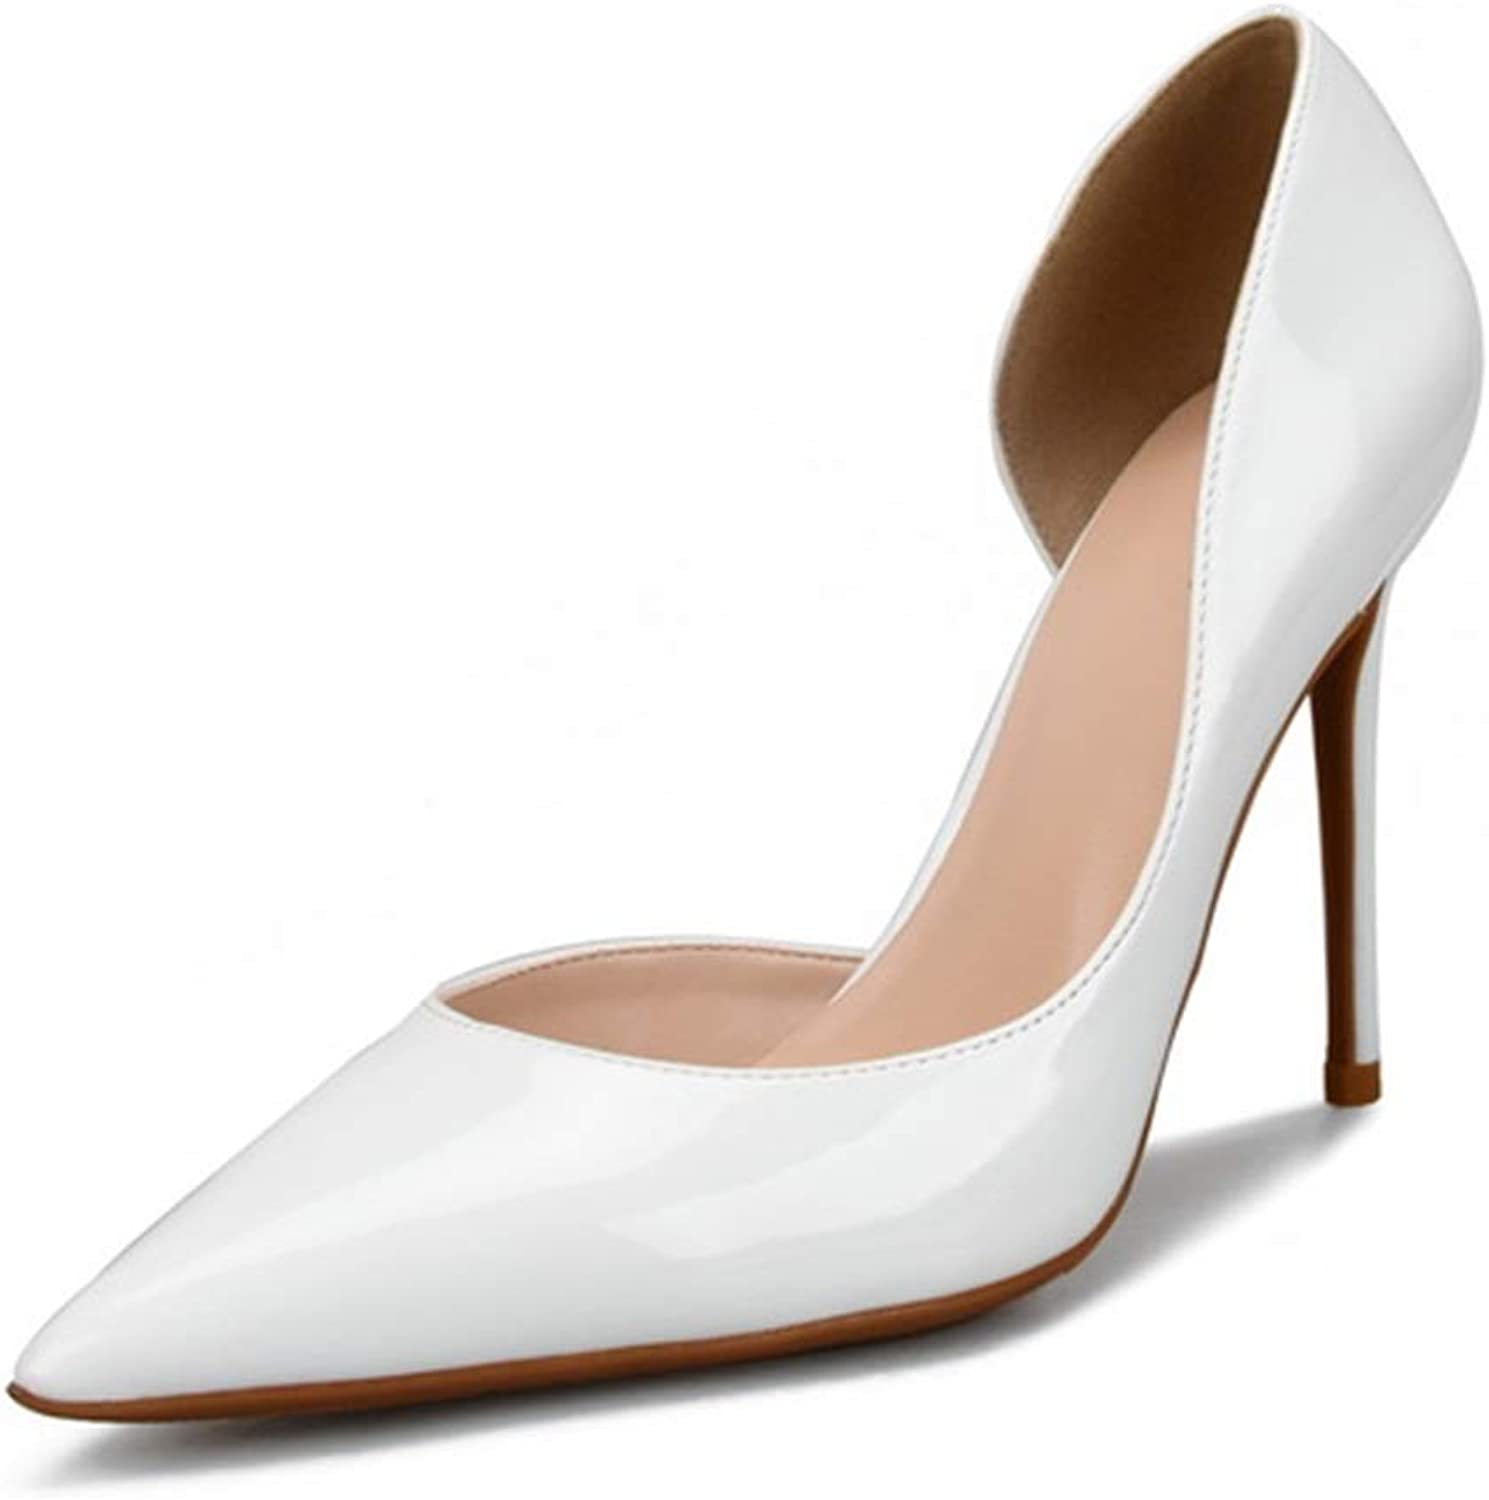 shoes Fashion Dorsay Pumps for Women High Stiletto Heels Side Cut Sexy Pointed shoes for Ladies  Pointed, Classic Slip On Dress Pumps Comfortable (color   White 8 cm Heel, Size   10.5 M US)